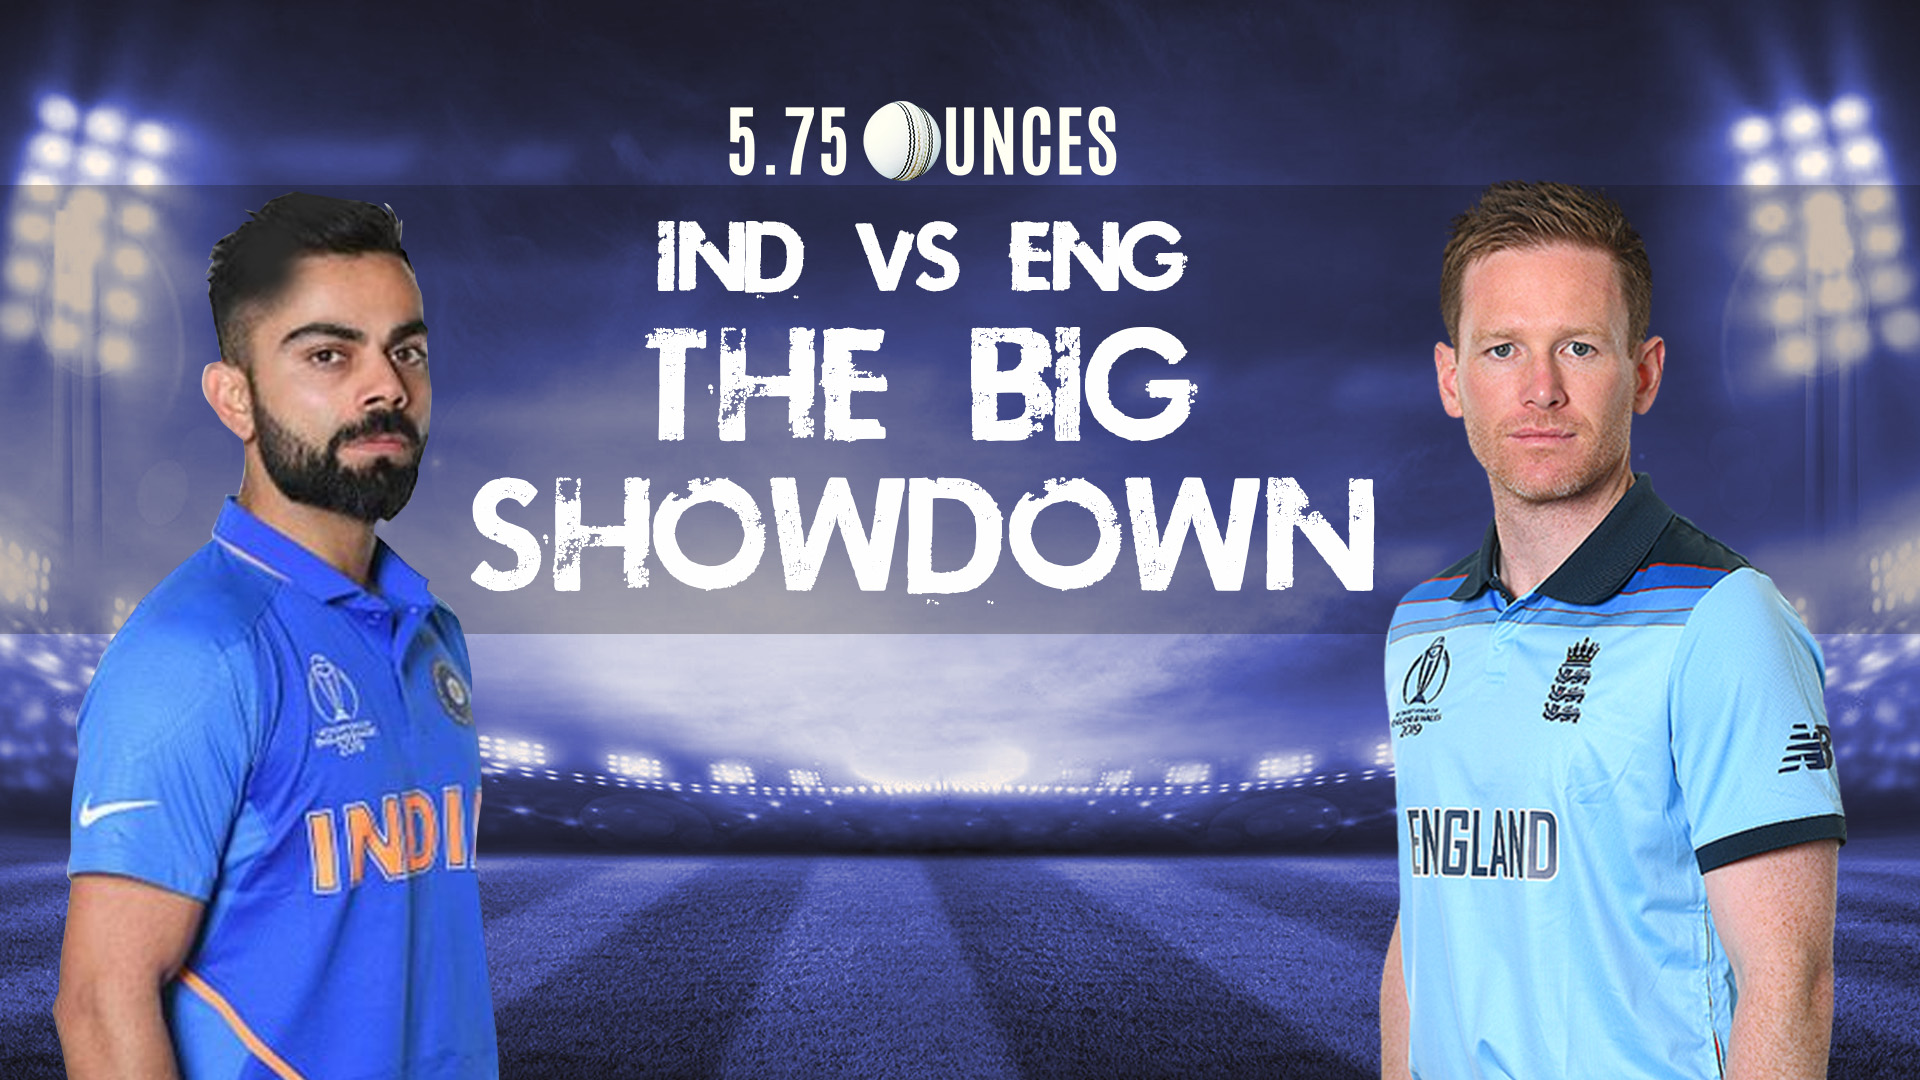 India vs England ICC World Cup 2019 preview